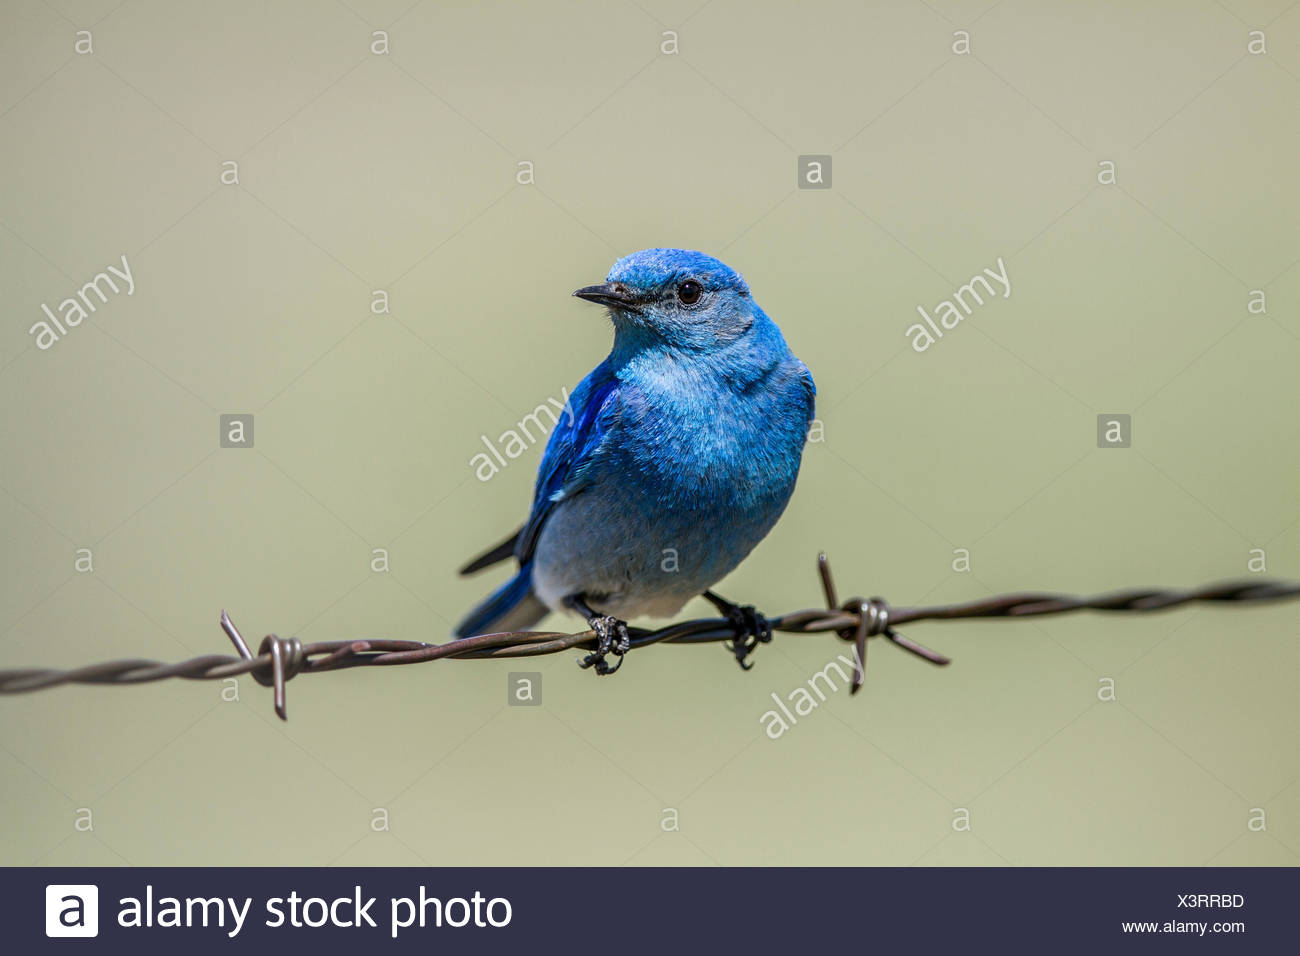 Mountain Bluebird (Sialia currucoides) Beautiful and pretty,  the colorful male bluebird sitting on barbed wire fence. Wateton National Park, Albeta, Canada - Stock Image